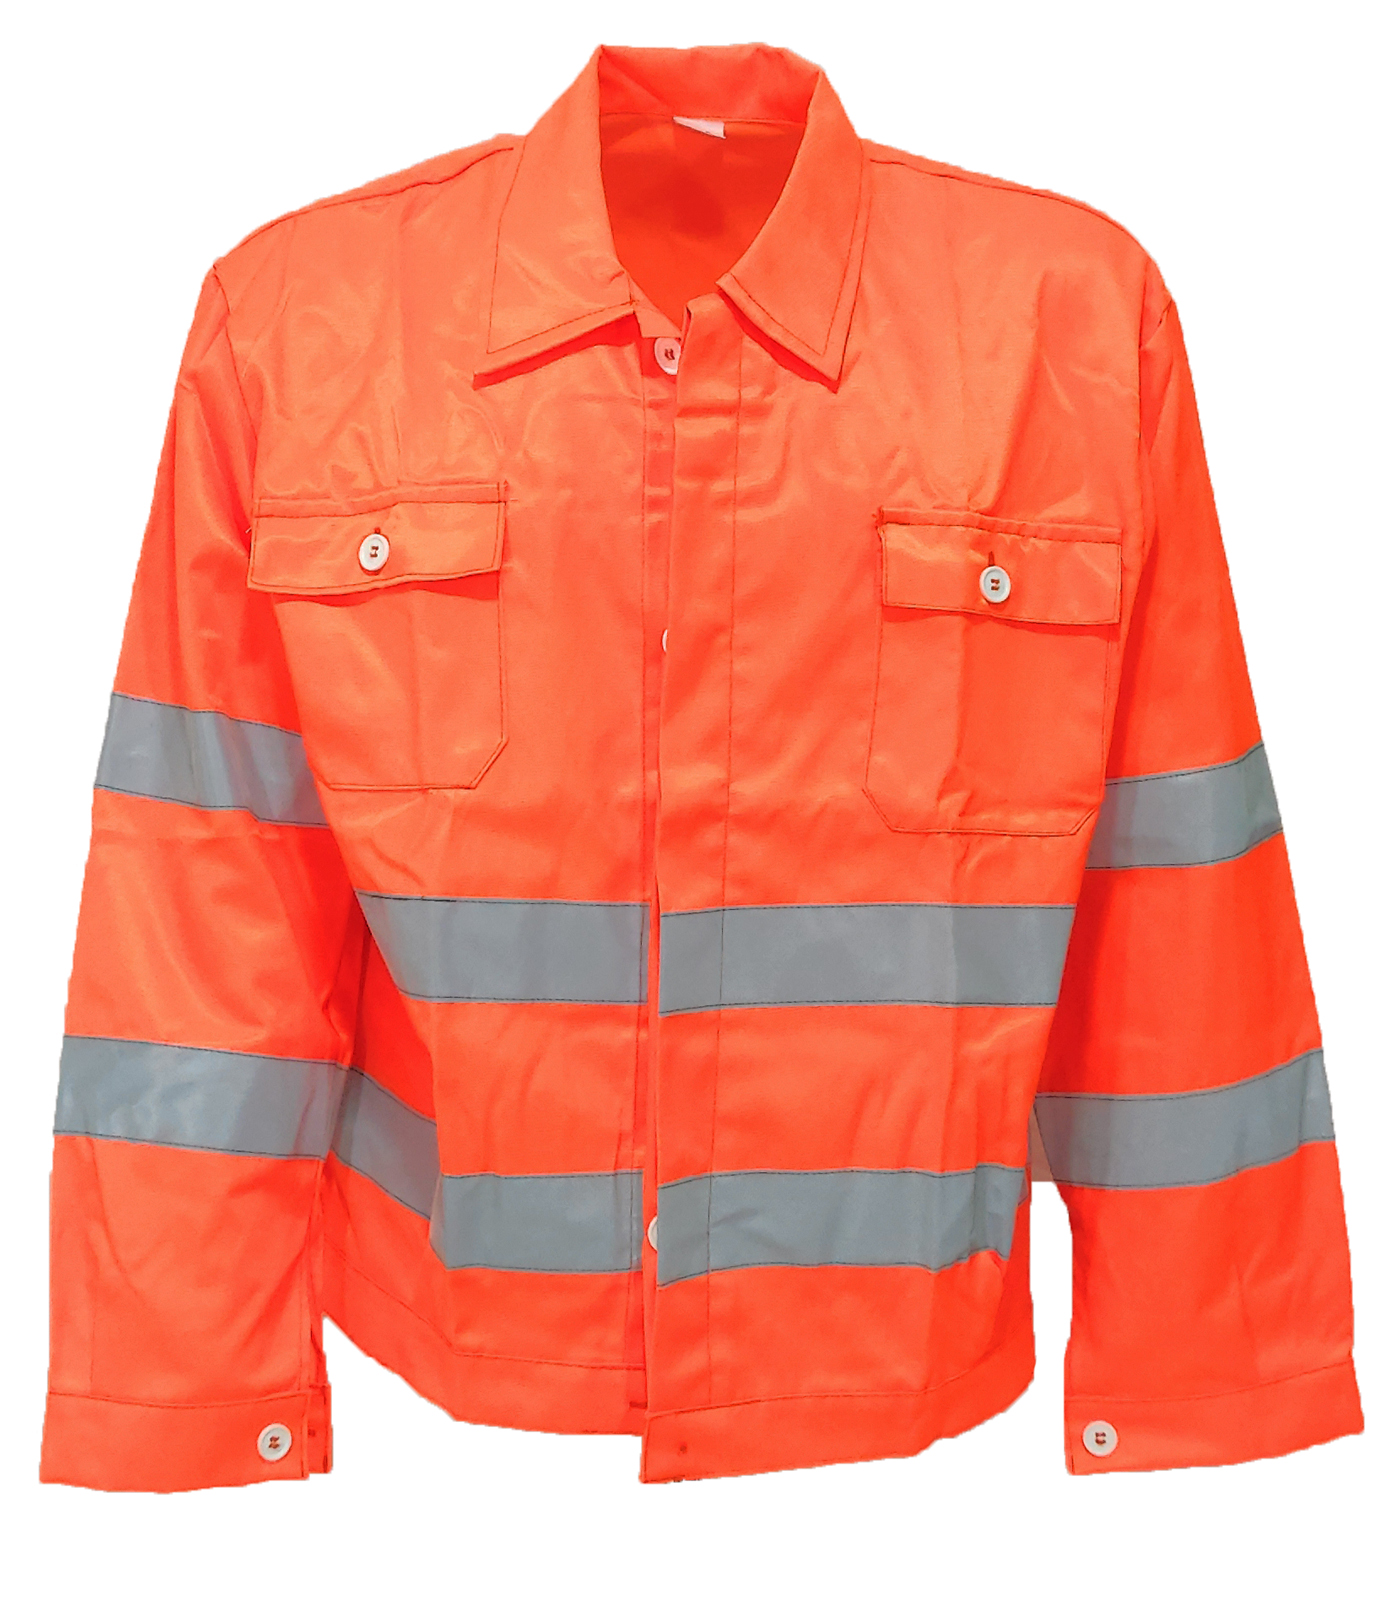 Jacket high visibility orange luminex jacket safety reflective